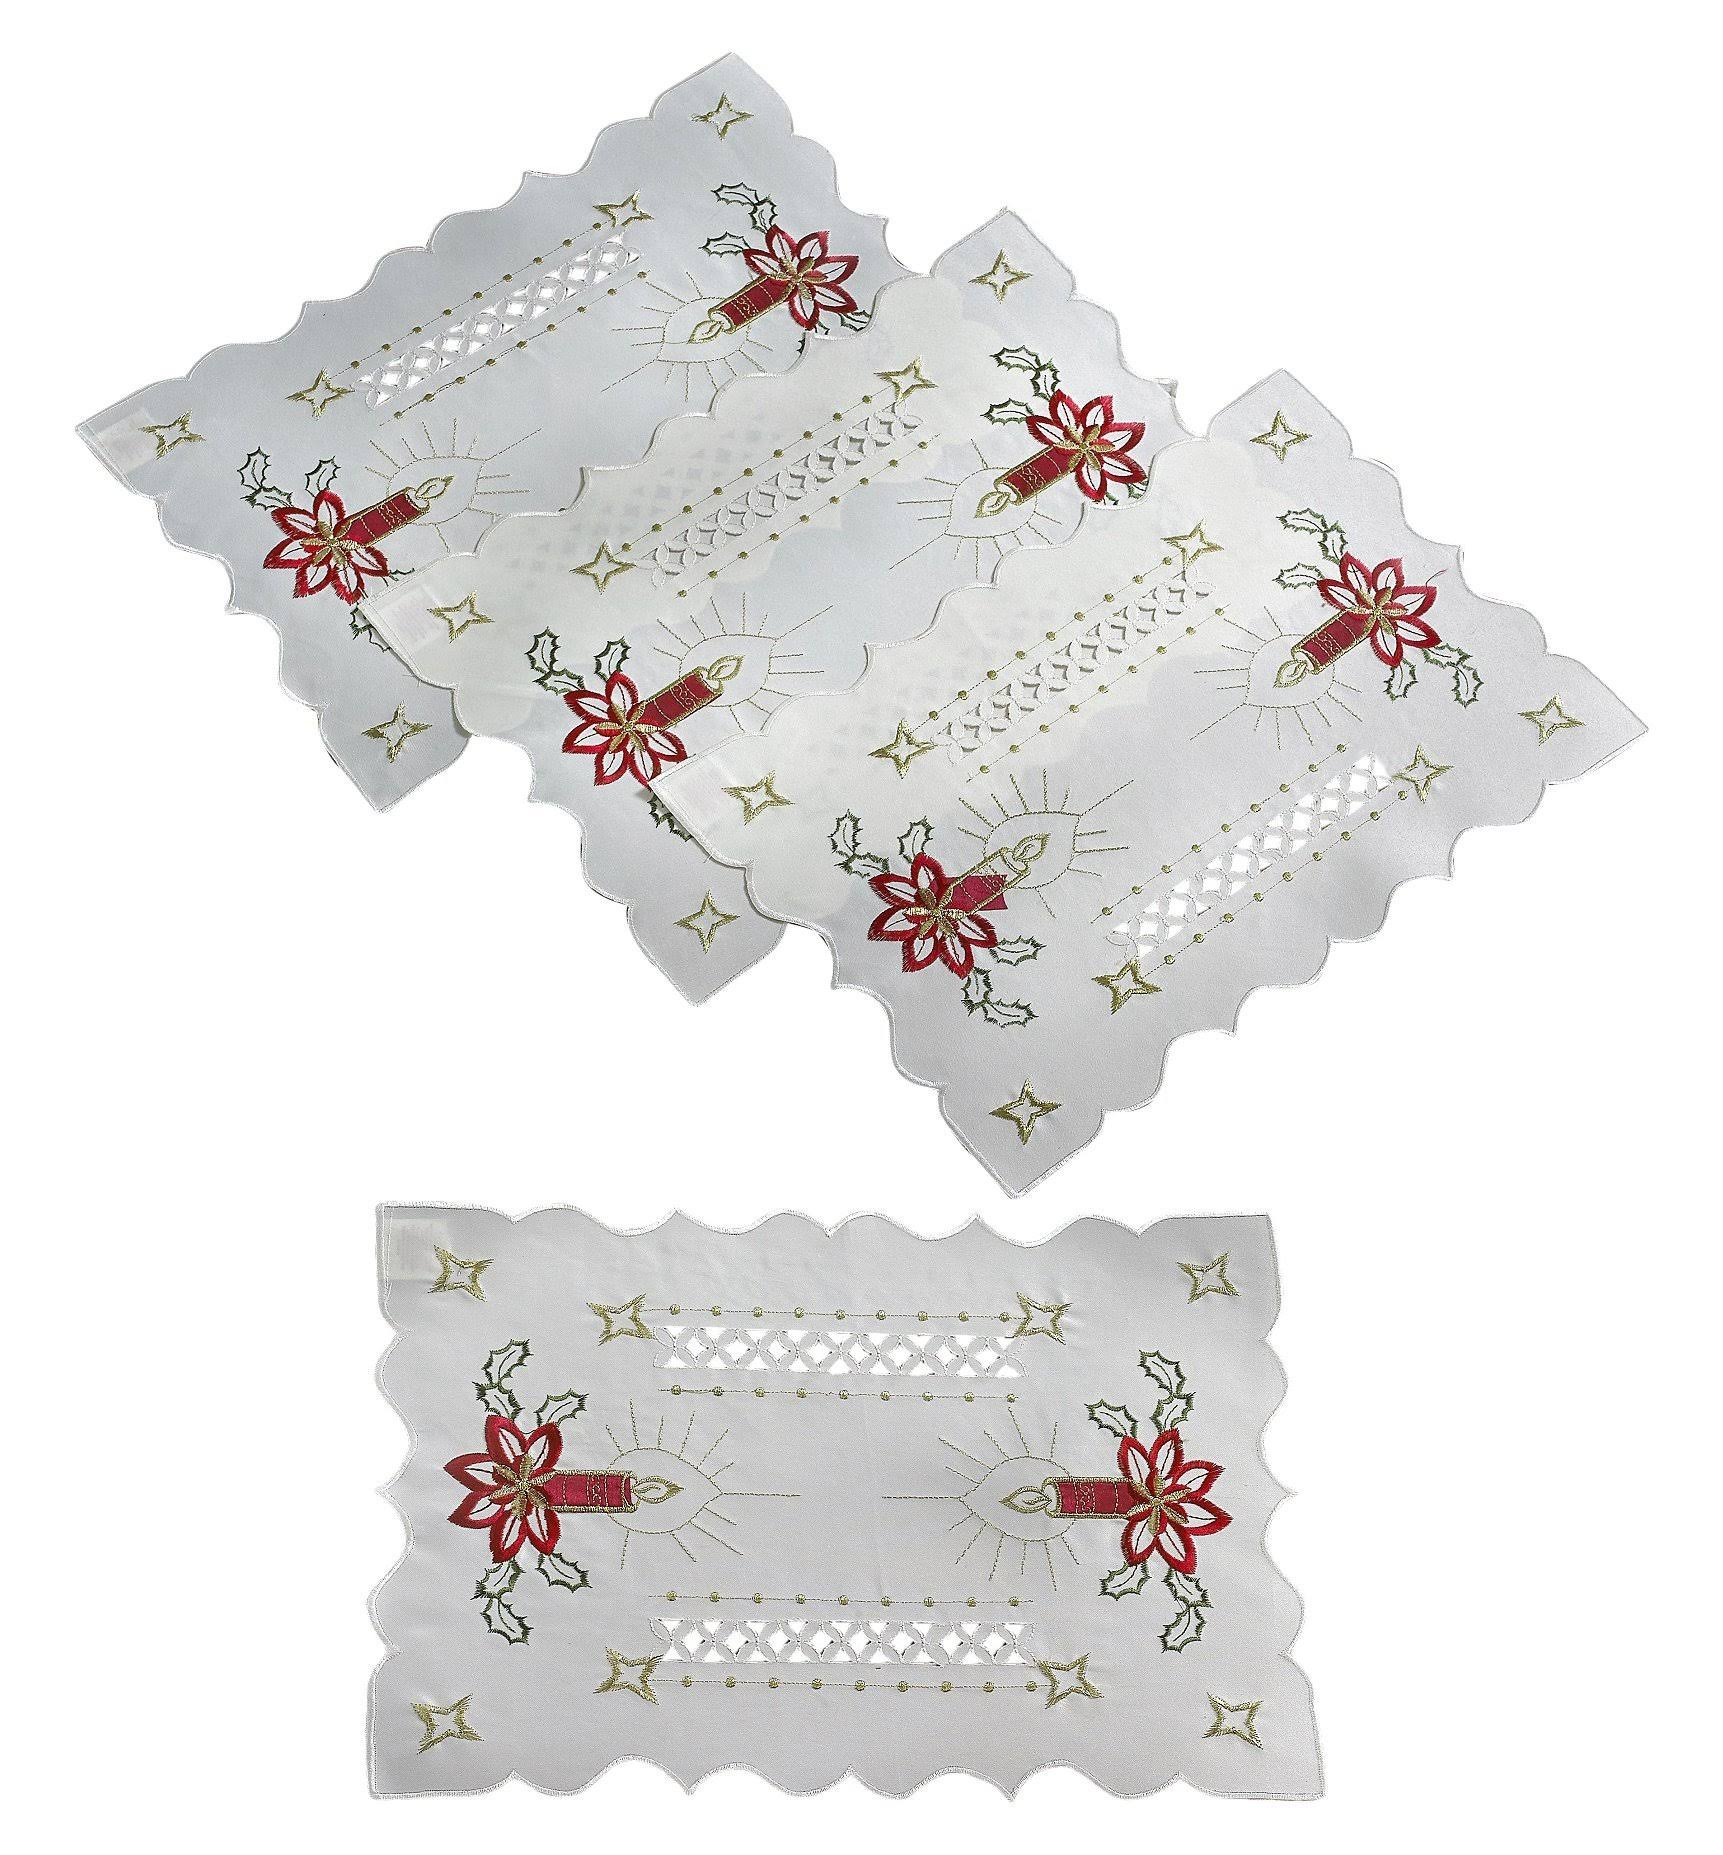 Violet Linen Seasonal Holiday Christmas Candles Holiday Embroidered Design Table Runner, Size: 13 inch by 70 inch, White